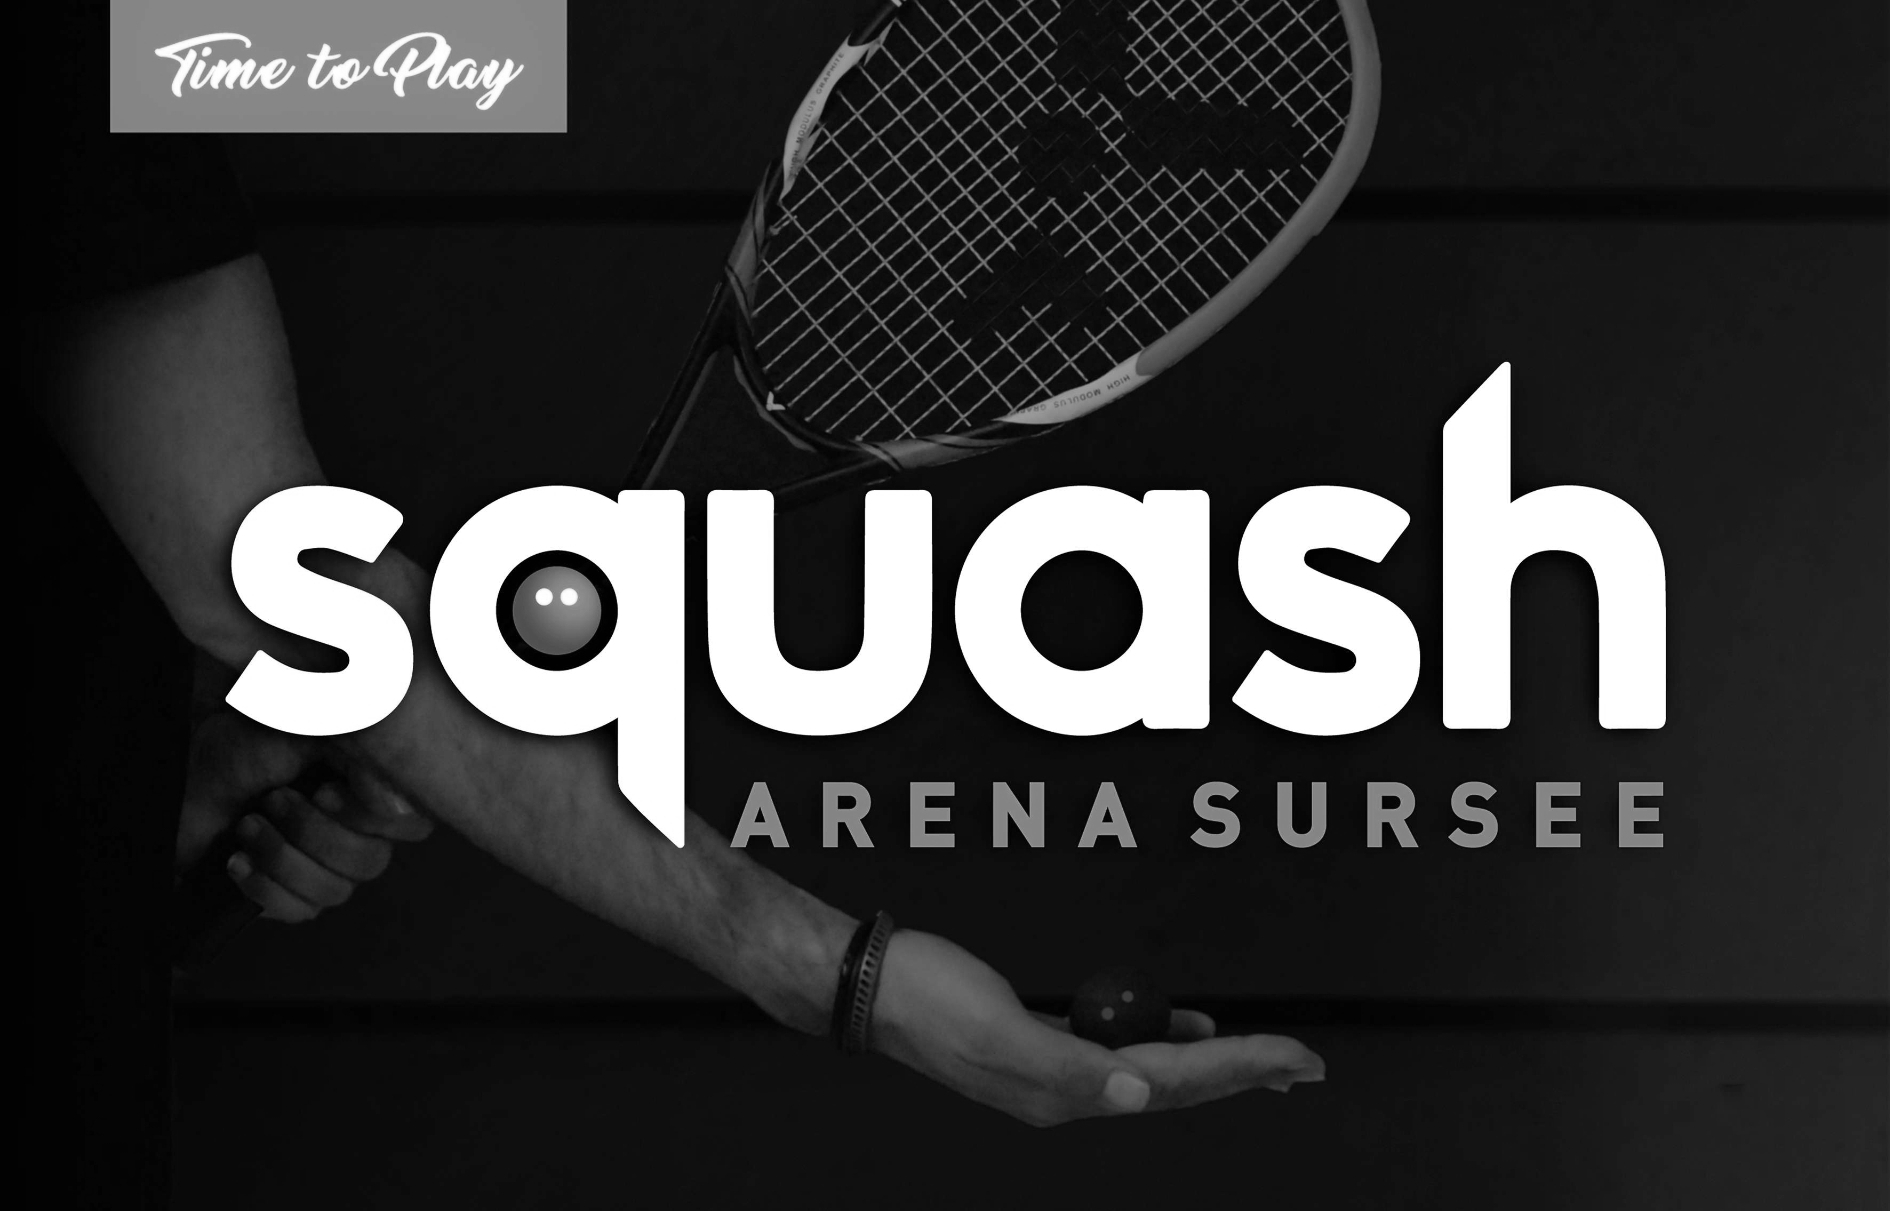 Time to Play squash ARENA SURSEE